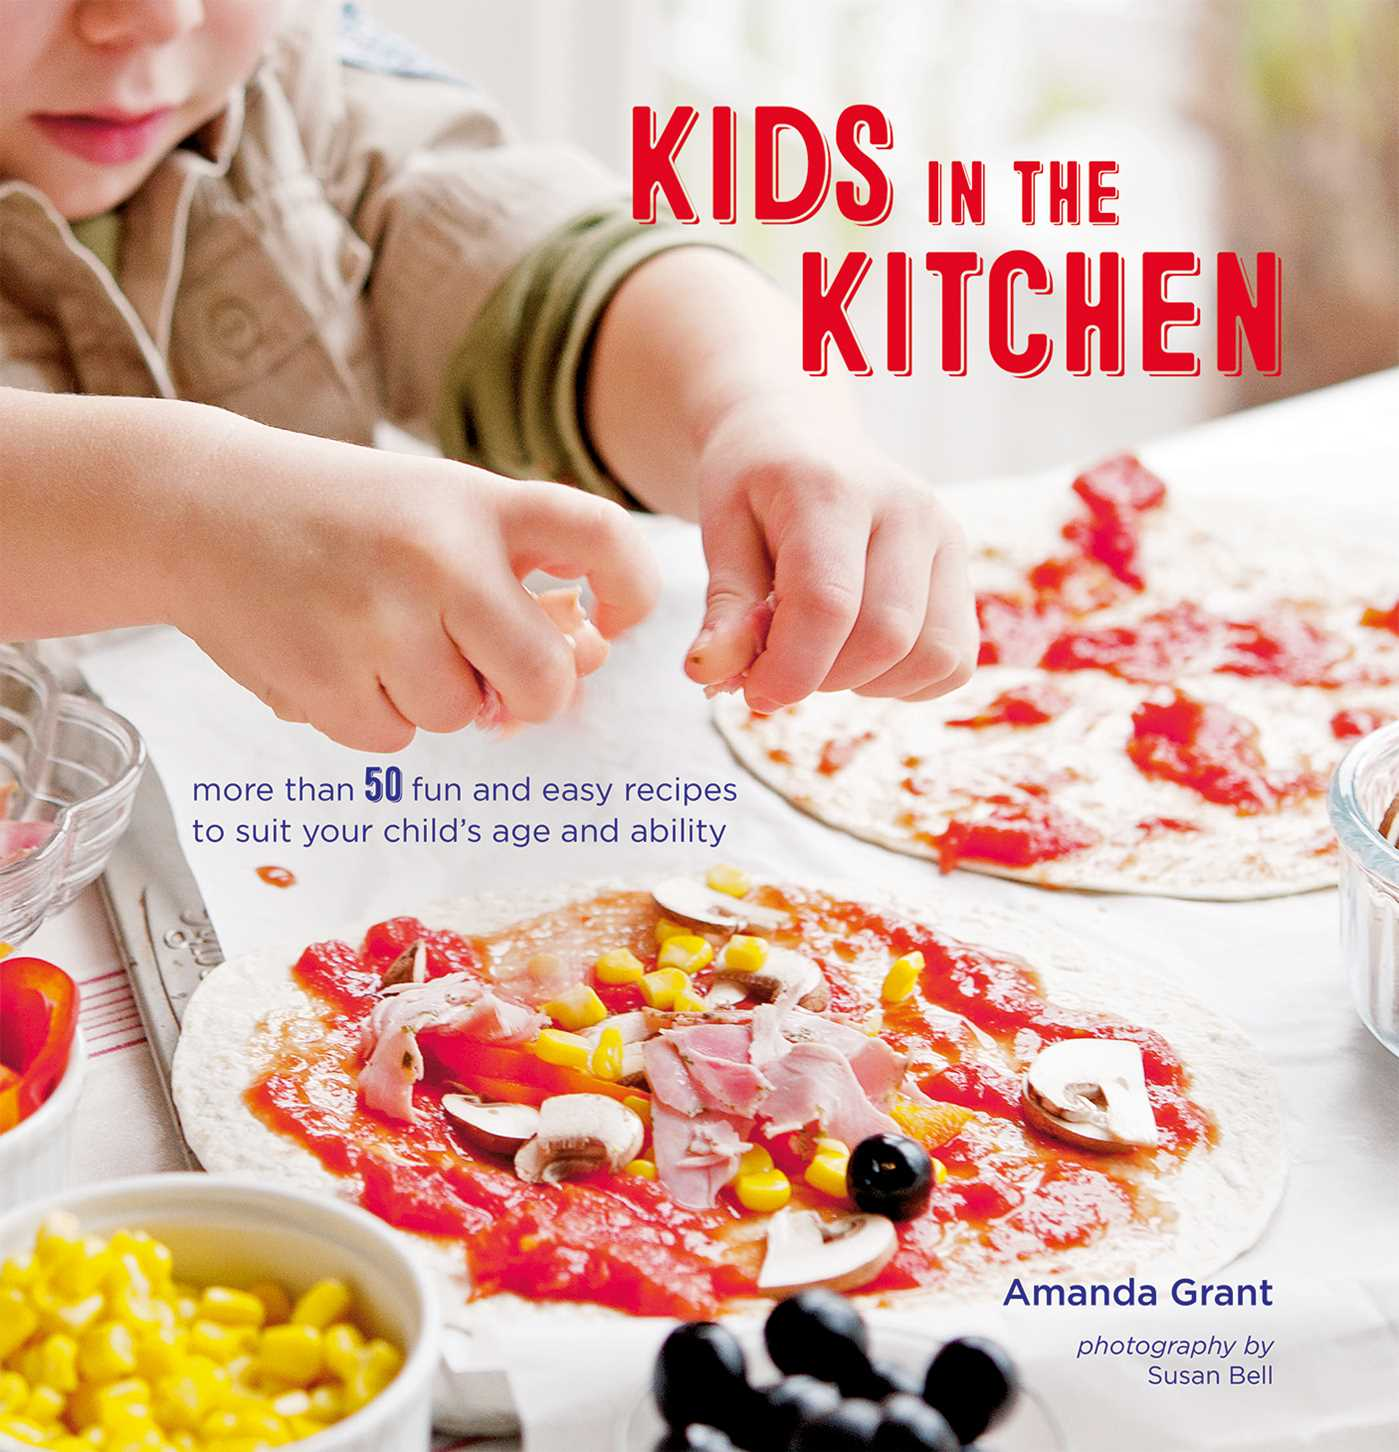 Kids in the kitchen 9781849758581 hr